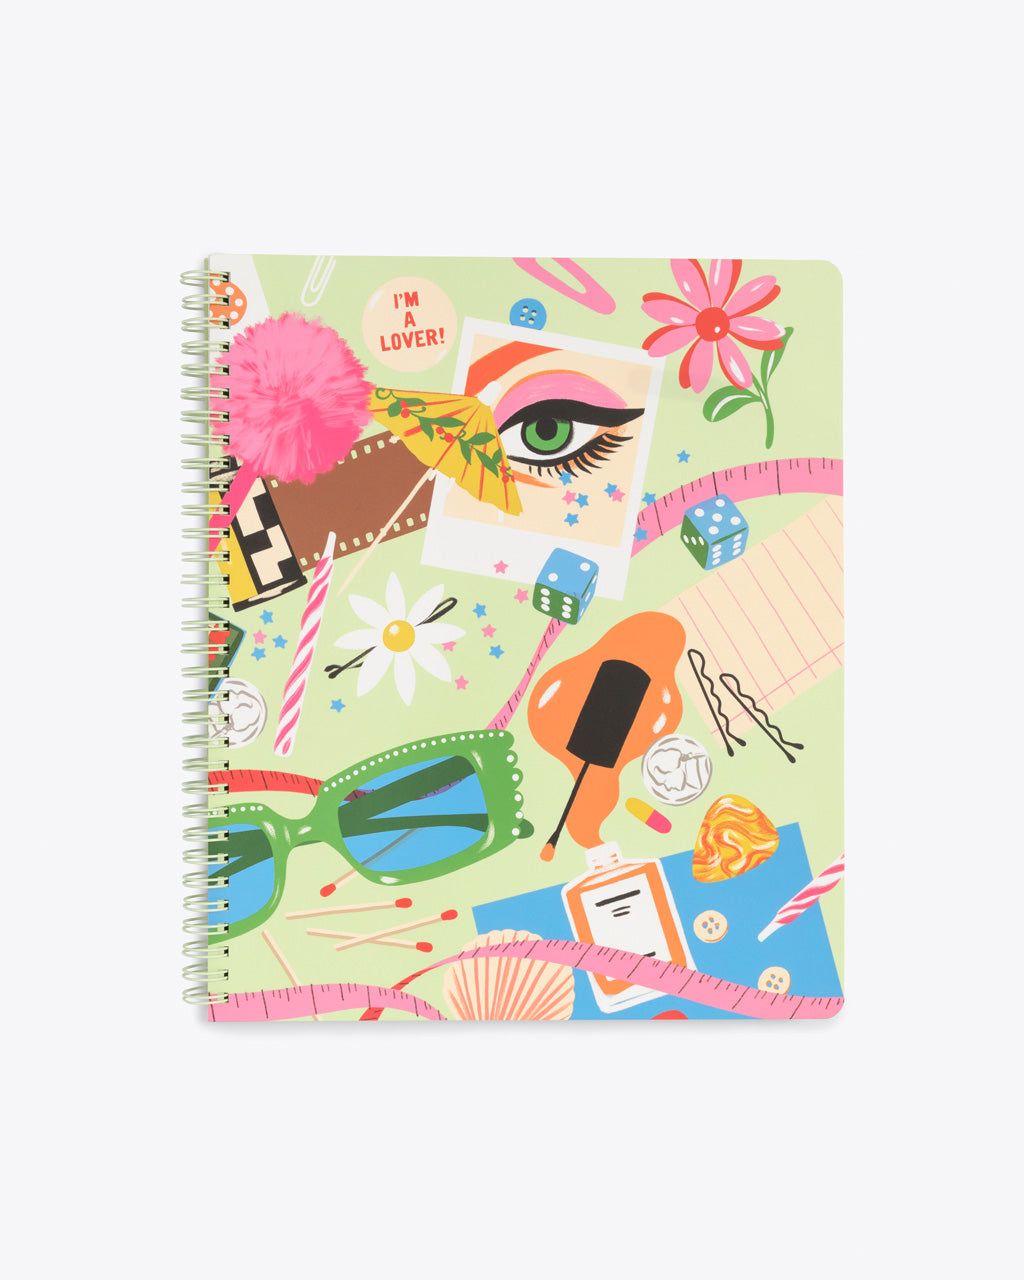 large notebook with a green cover with an abstract design